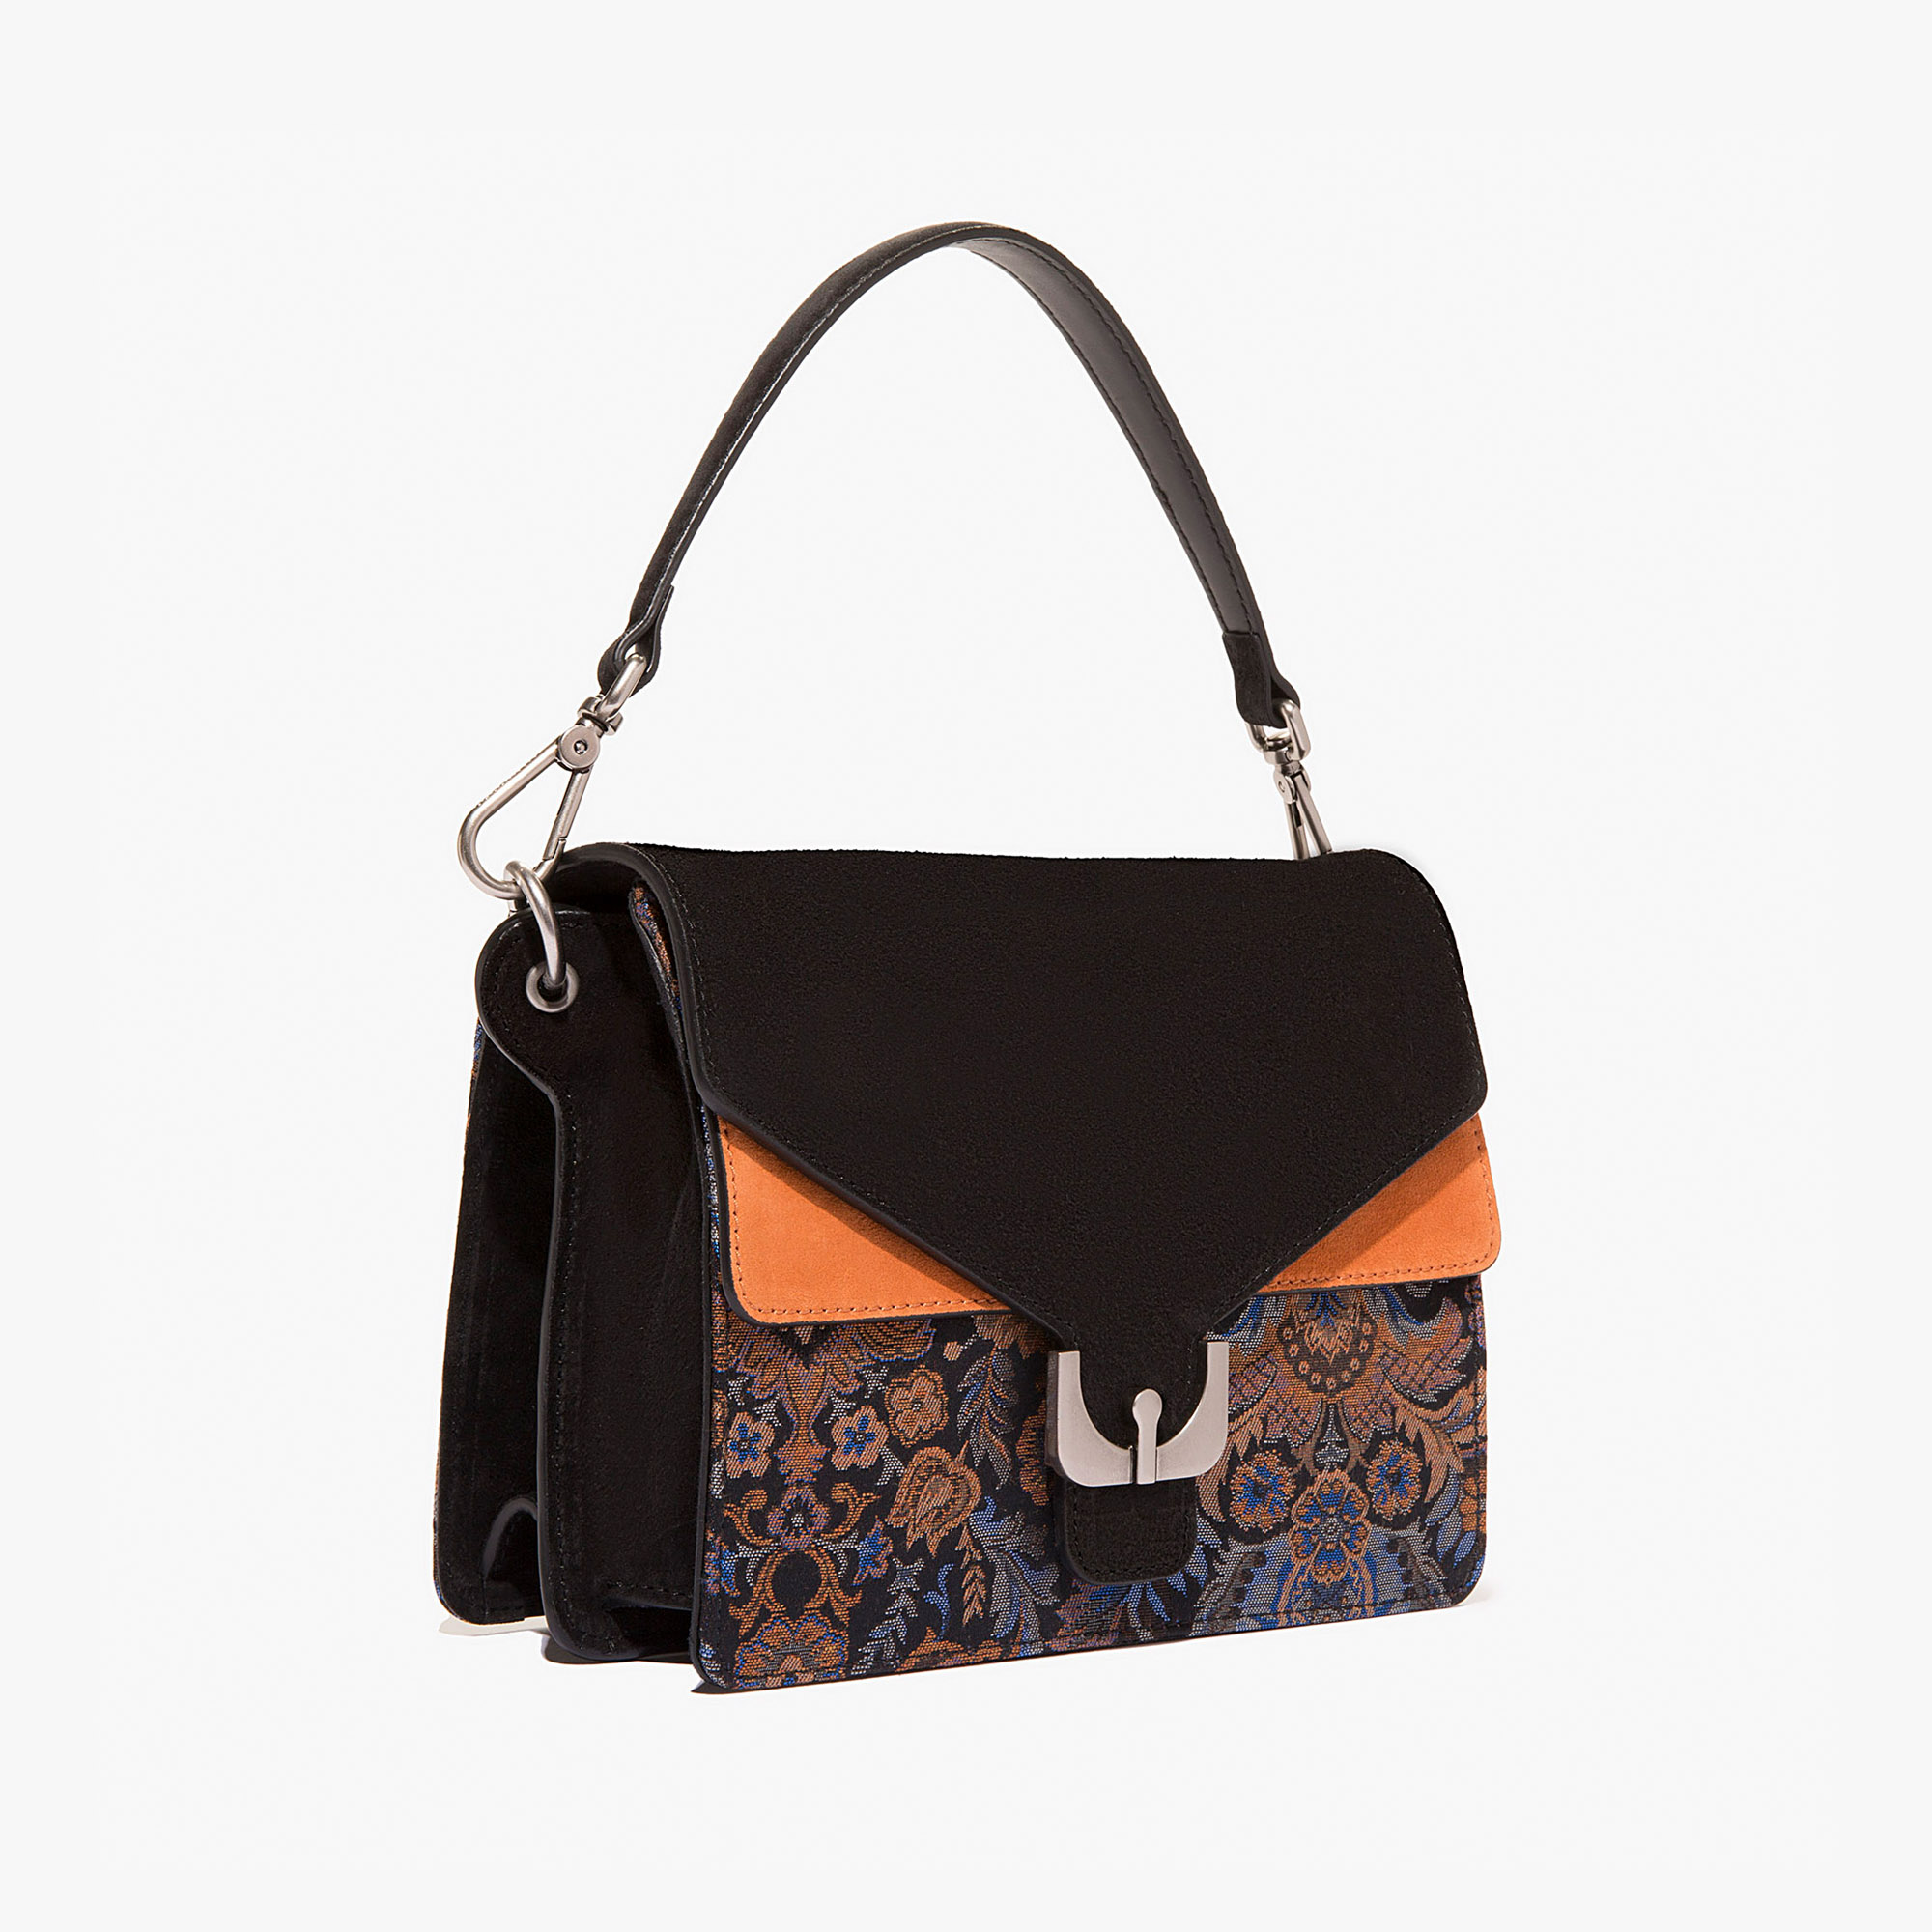 Ambrine fabric and suede bag with a single strap